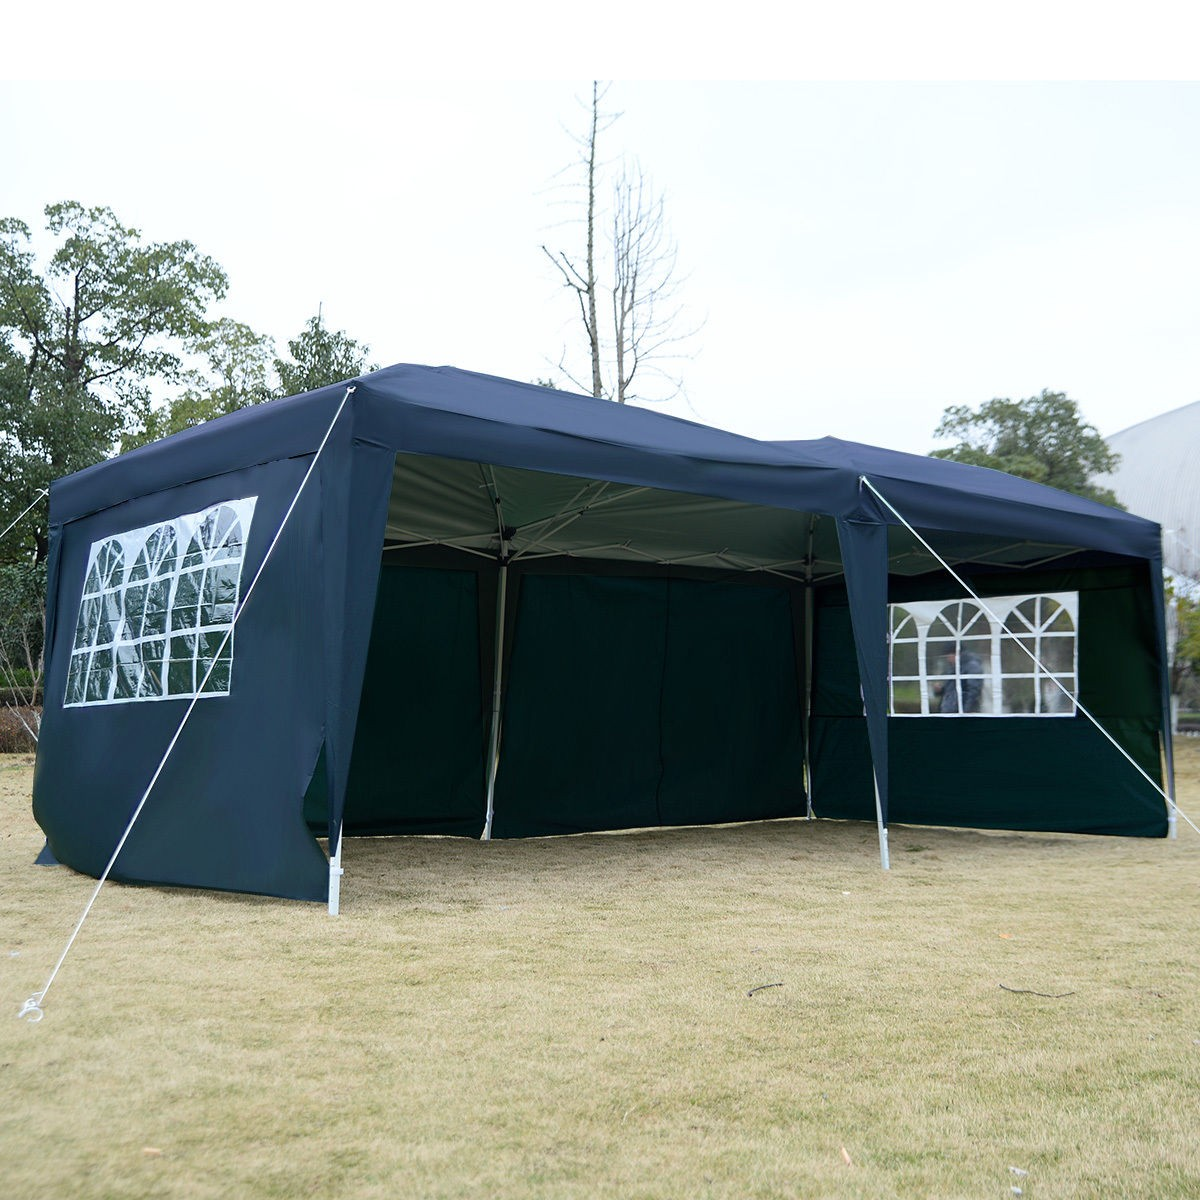 Apontus Outdoor Easy Pop Up Tent Cabana Canopy Gazebo with Walls 10' x 20' Blue by Apontus